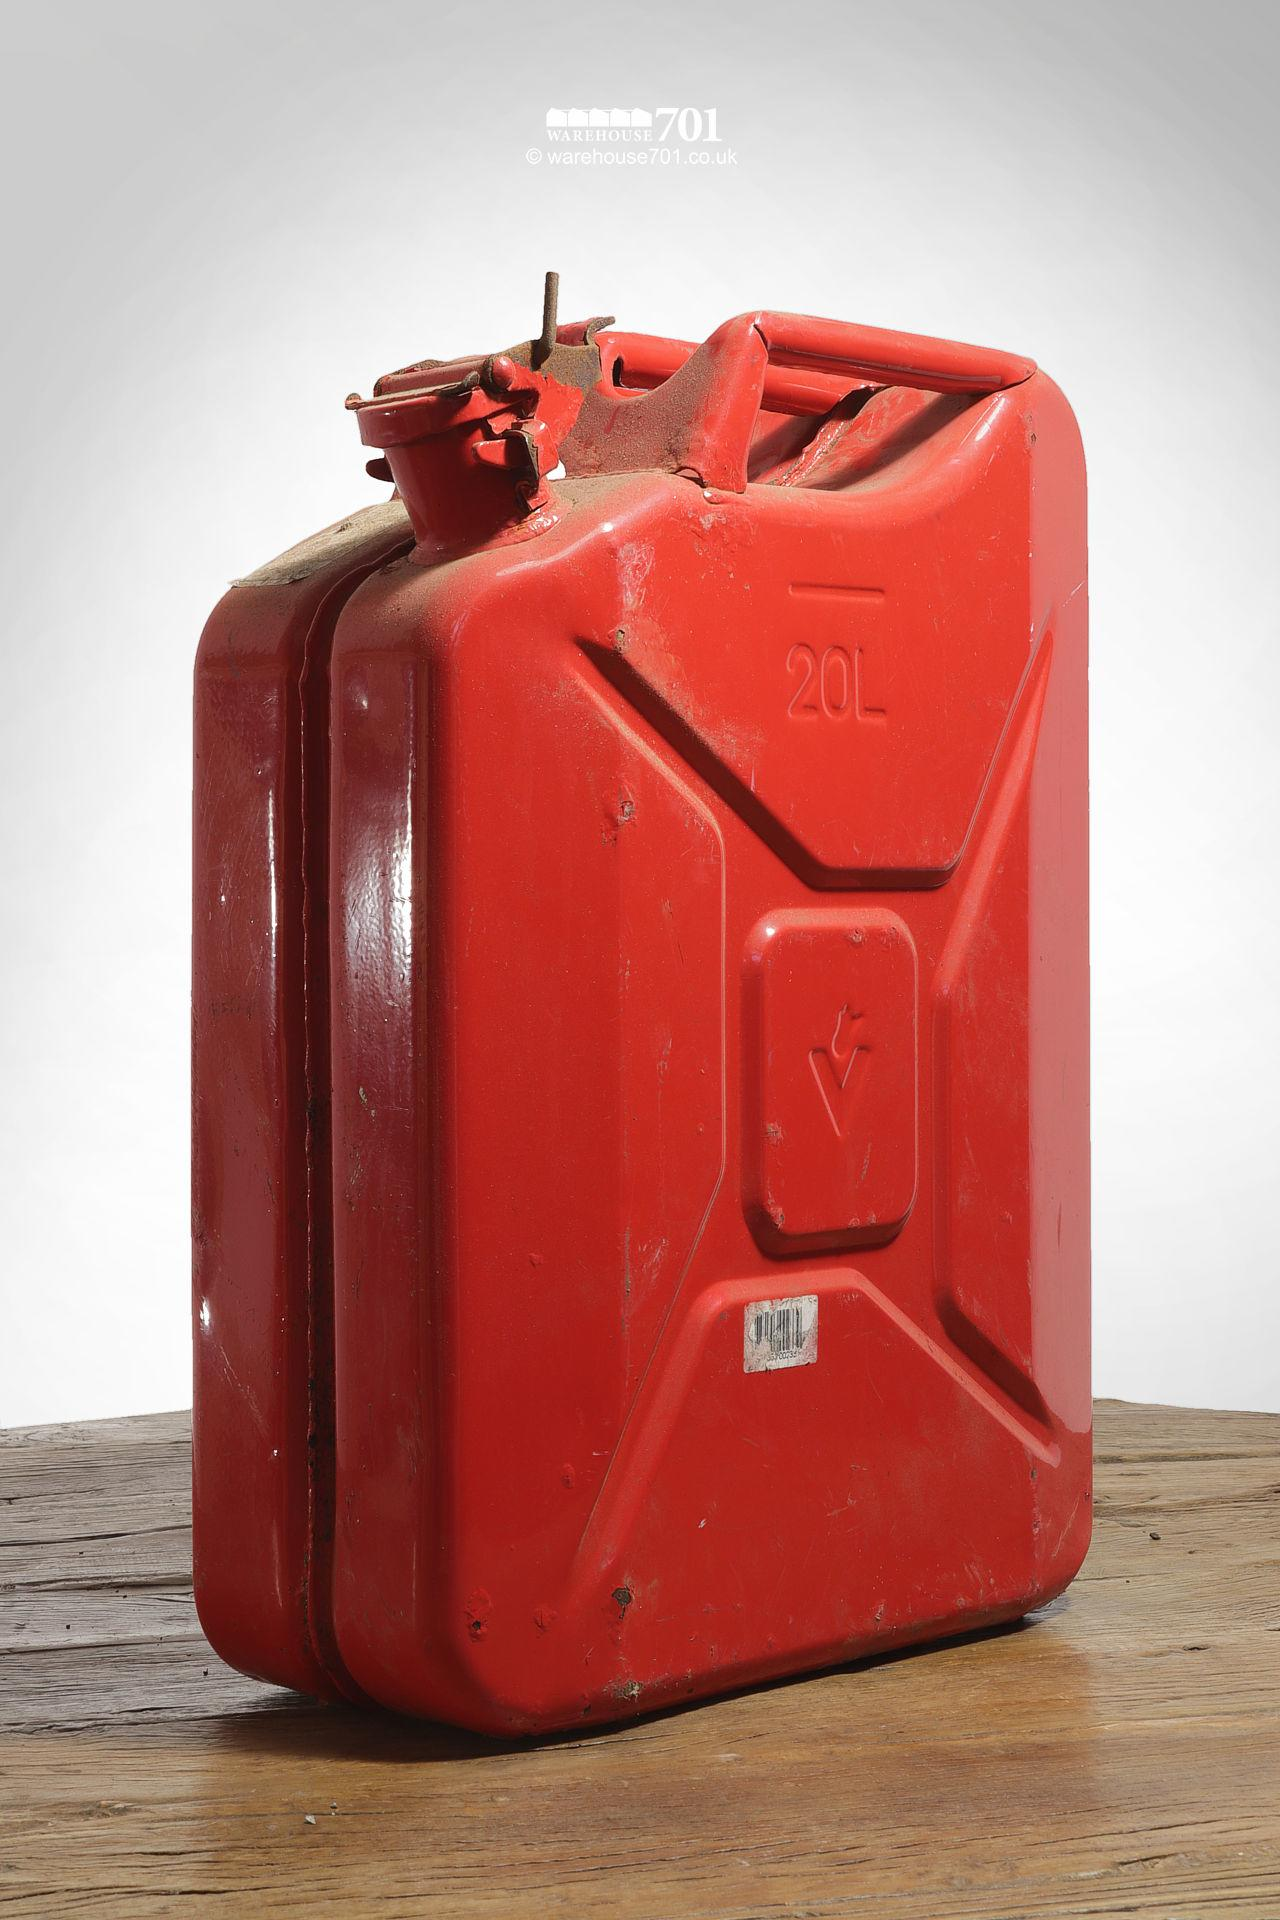 Assorted Salvaged Jerry Cans and Fuel and Oil Cans #2